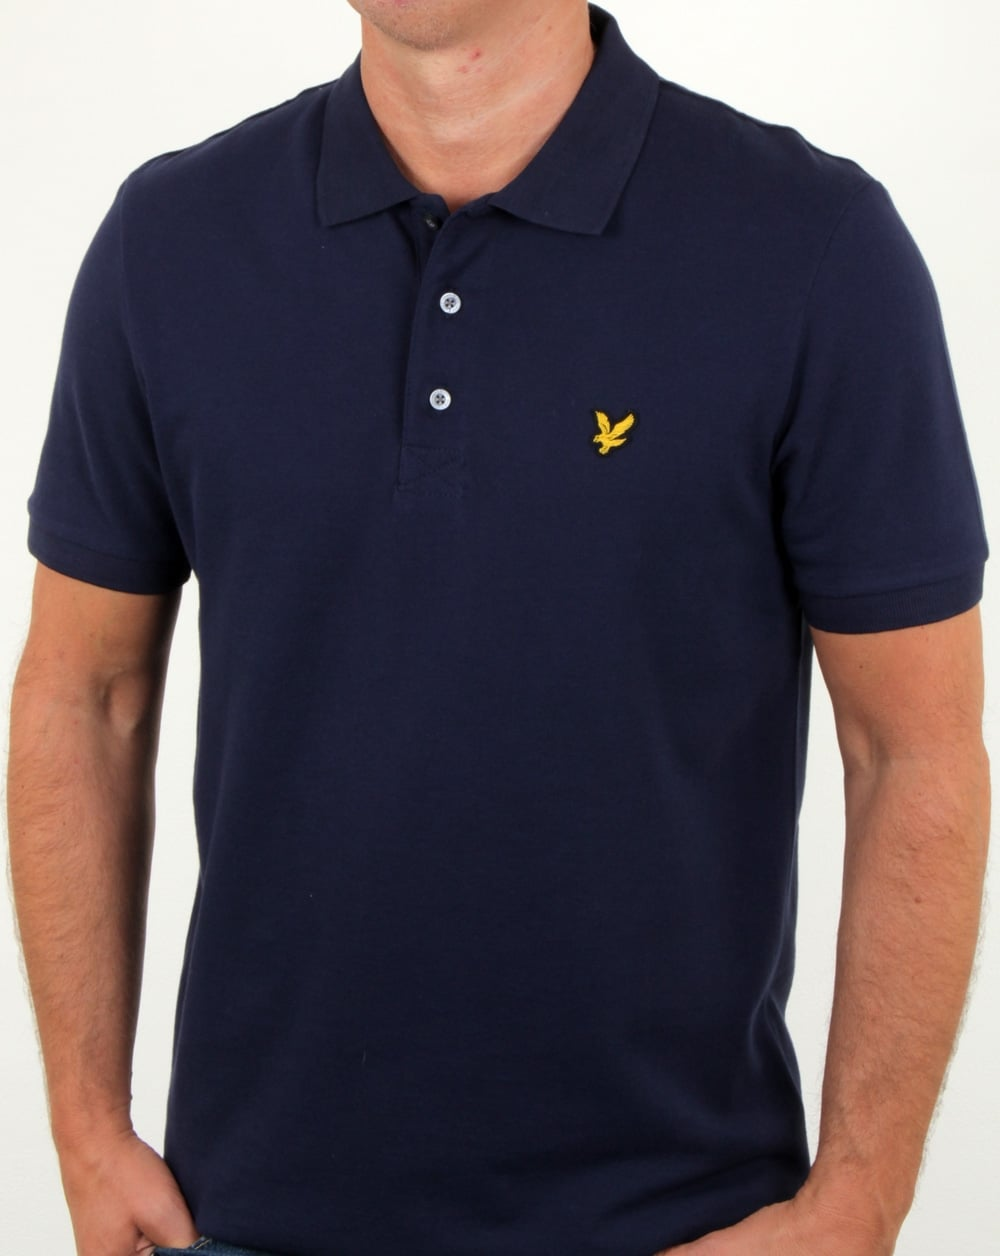 lyle and scott polo shirt navy pique neck cotton mens. Black Bedroom Furniture Sets. Home Design Ideas